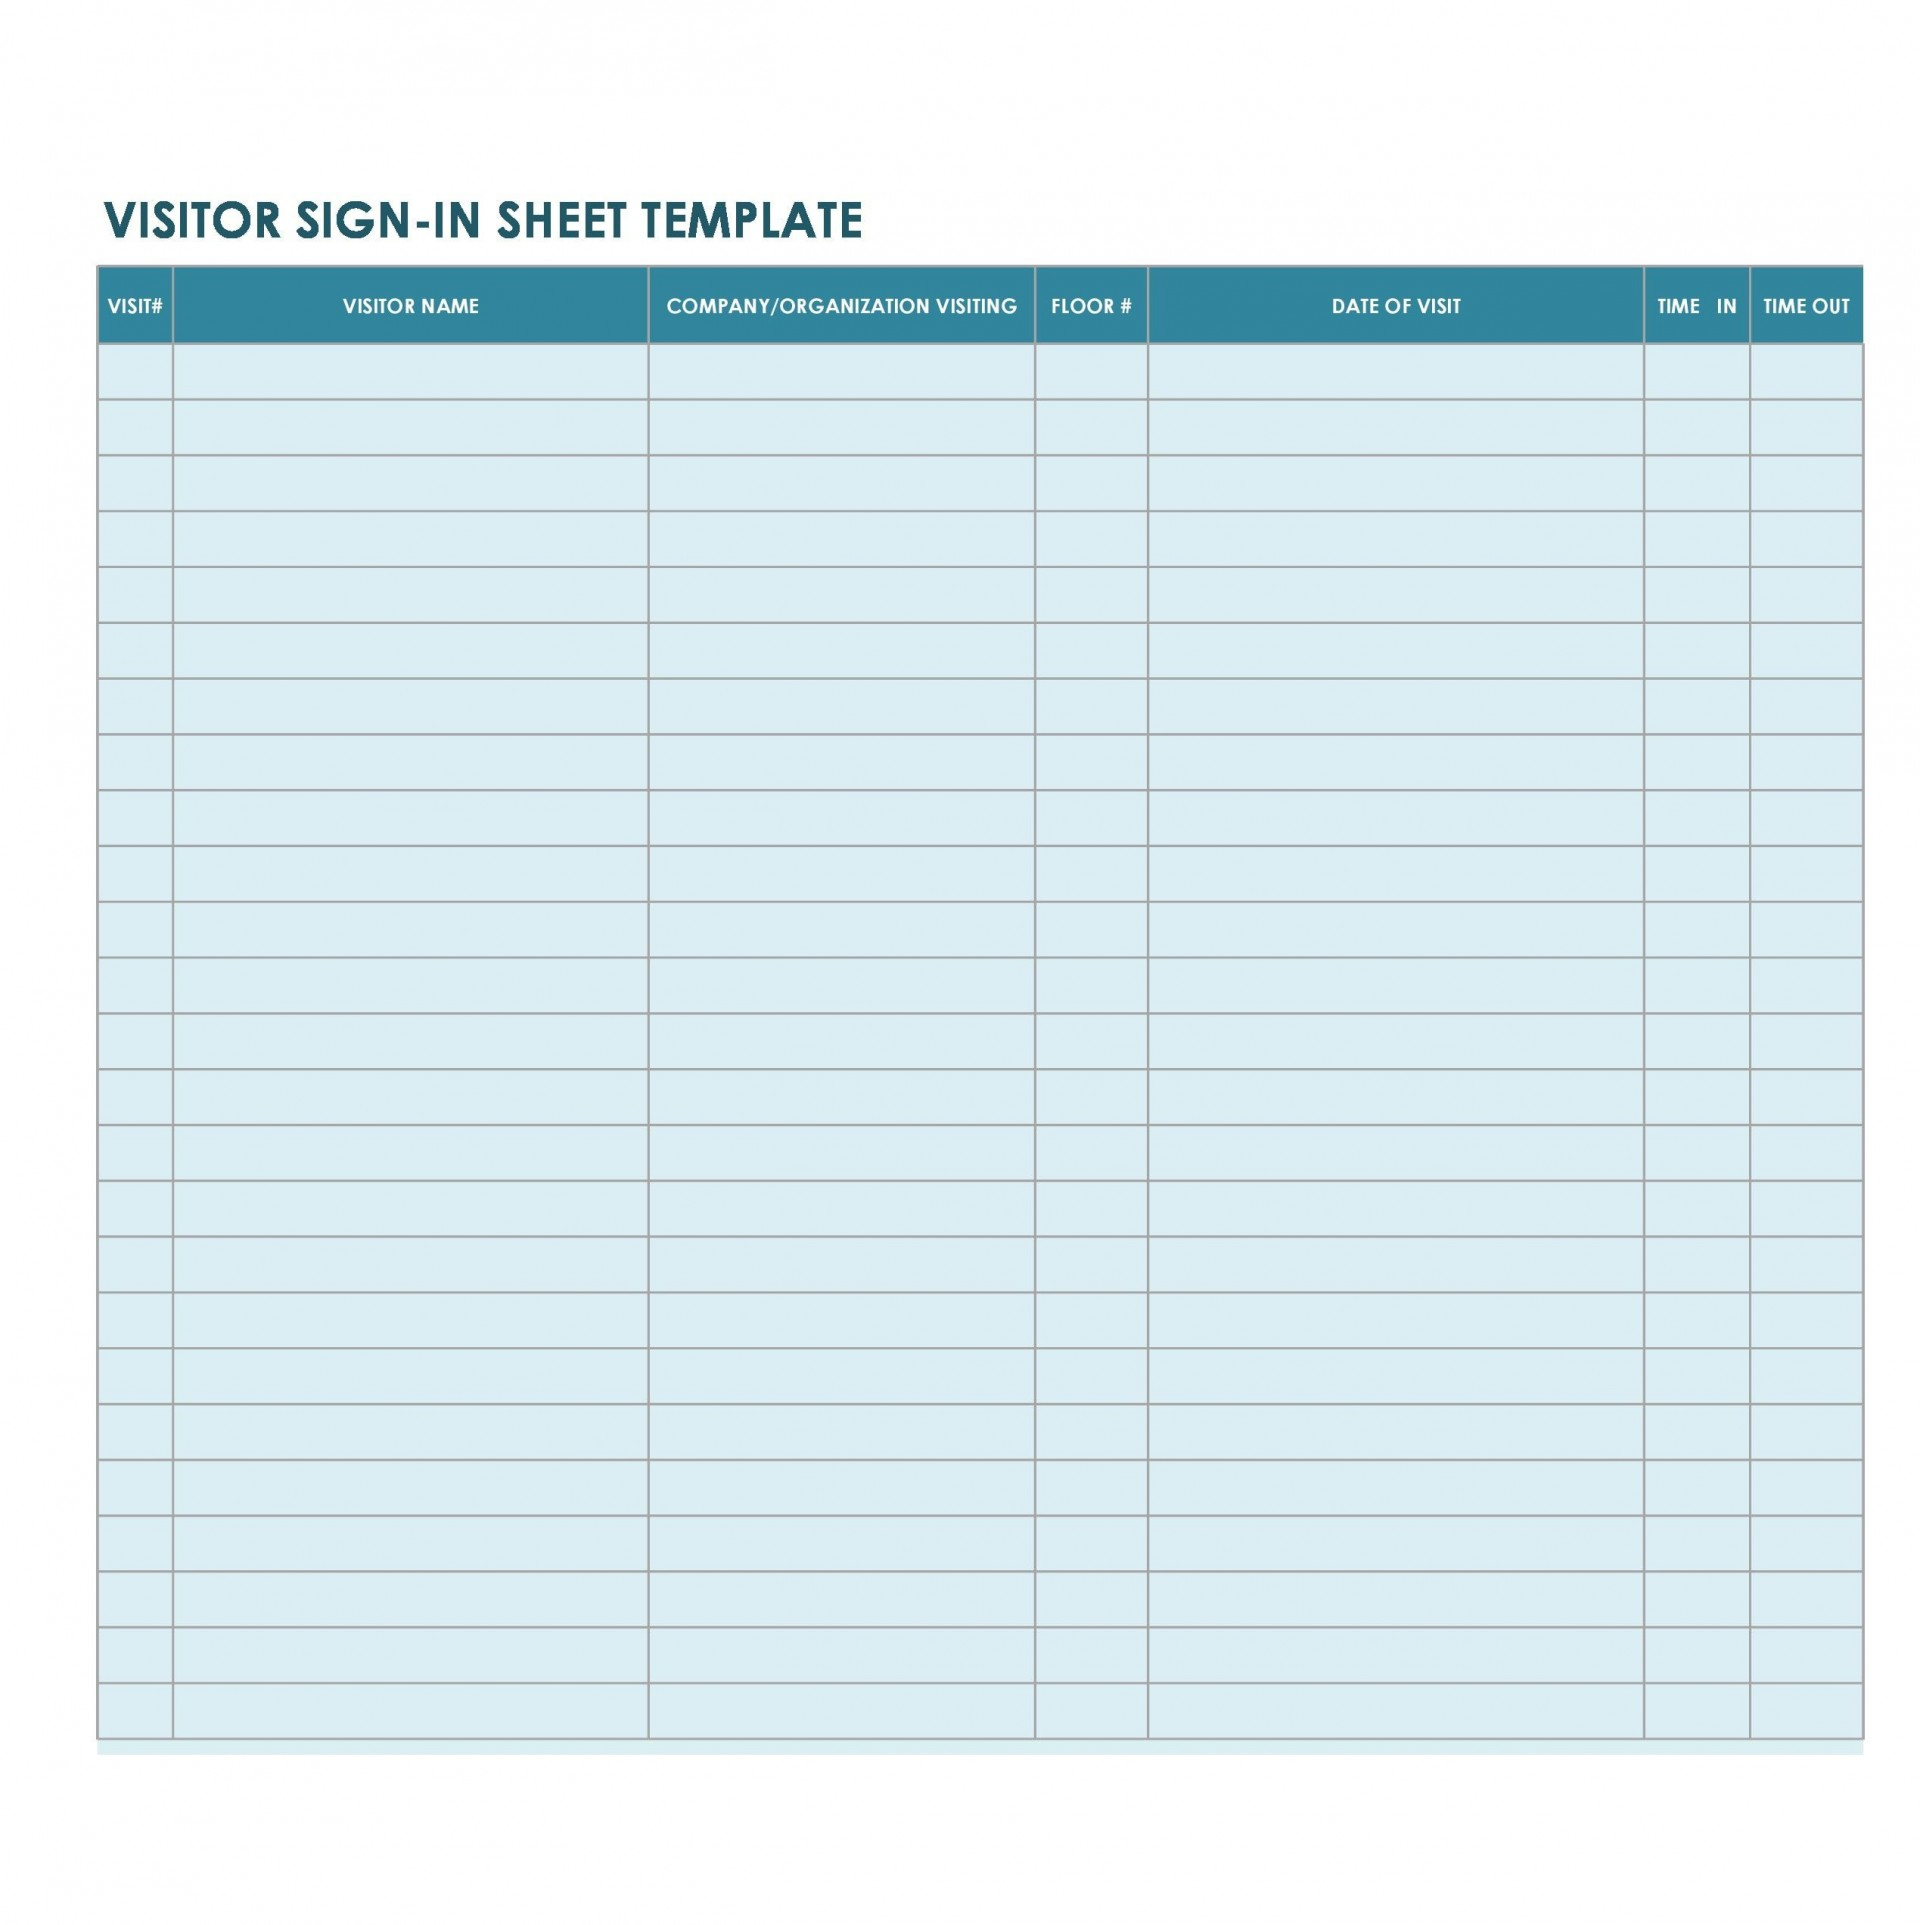 008 Rare Visitor Sign In Sheet Template Pdf Design 1920